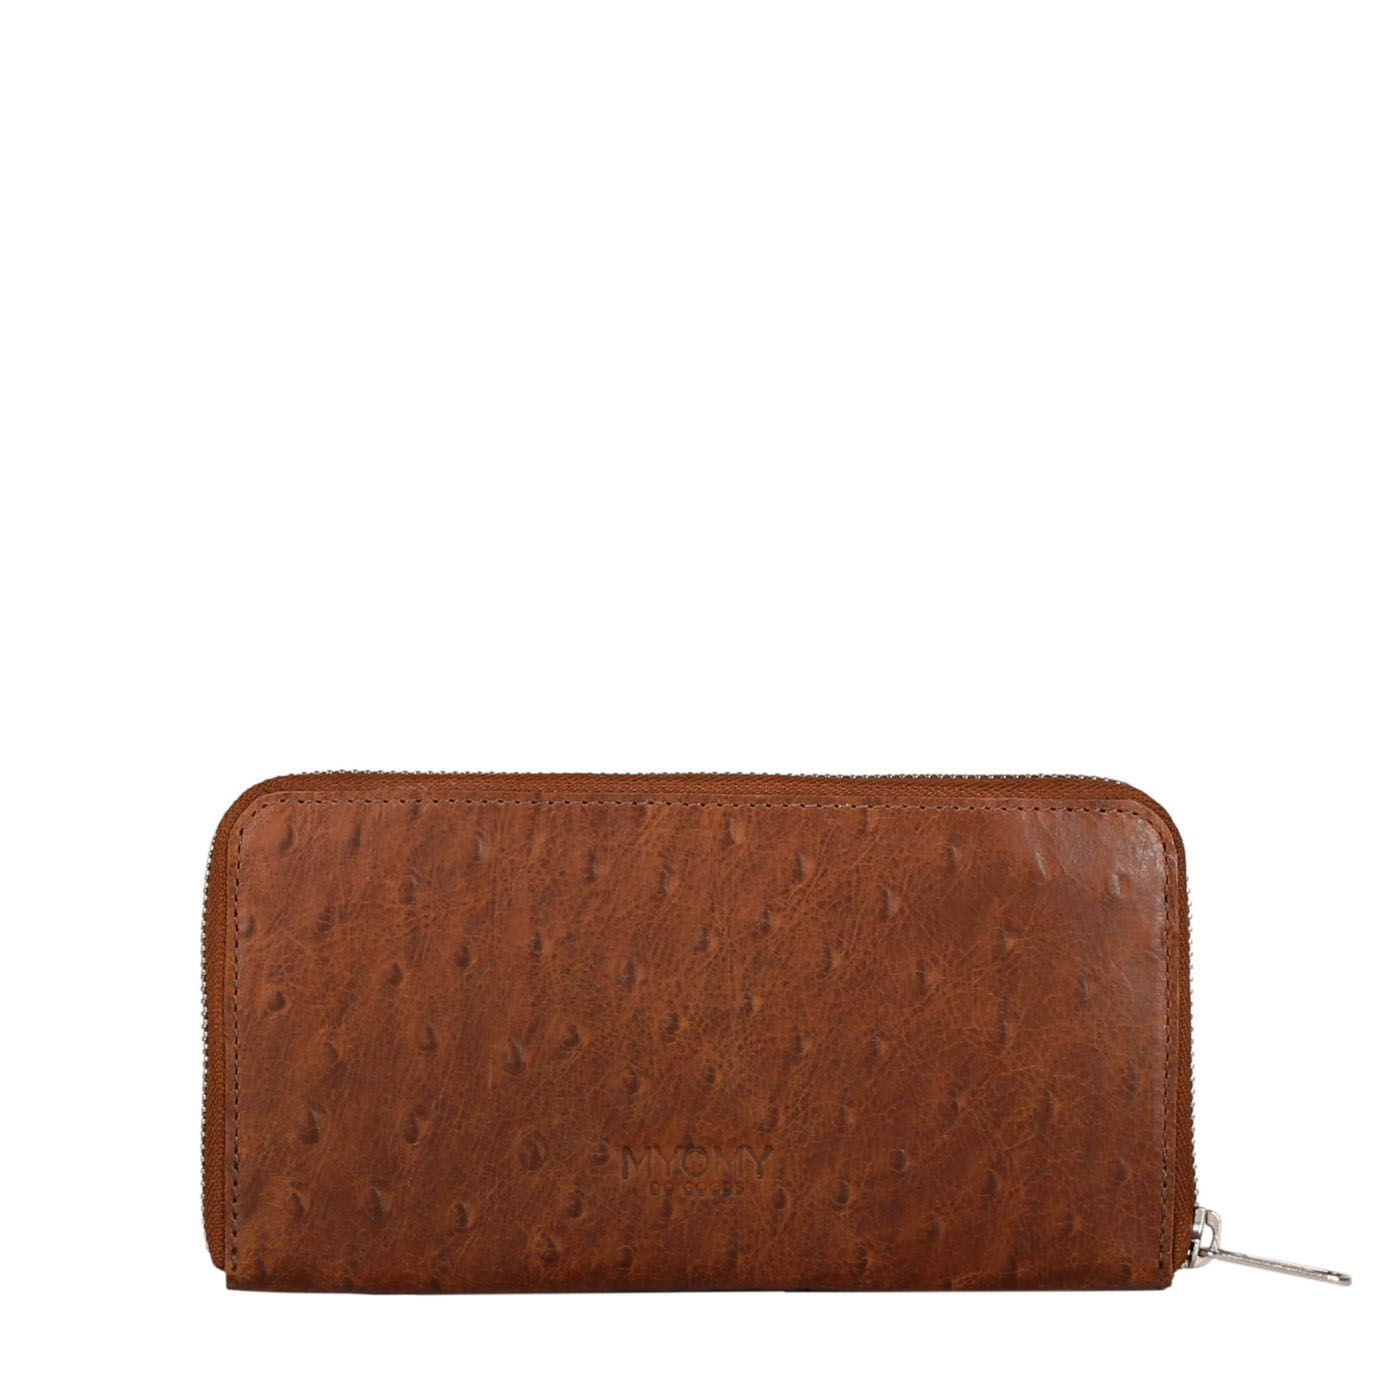 MY PAPER BAG Wallet - ostrich brandy